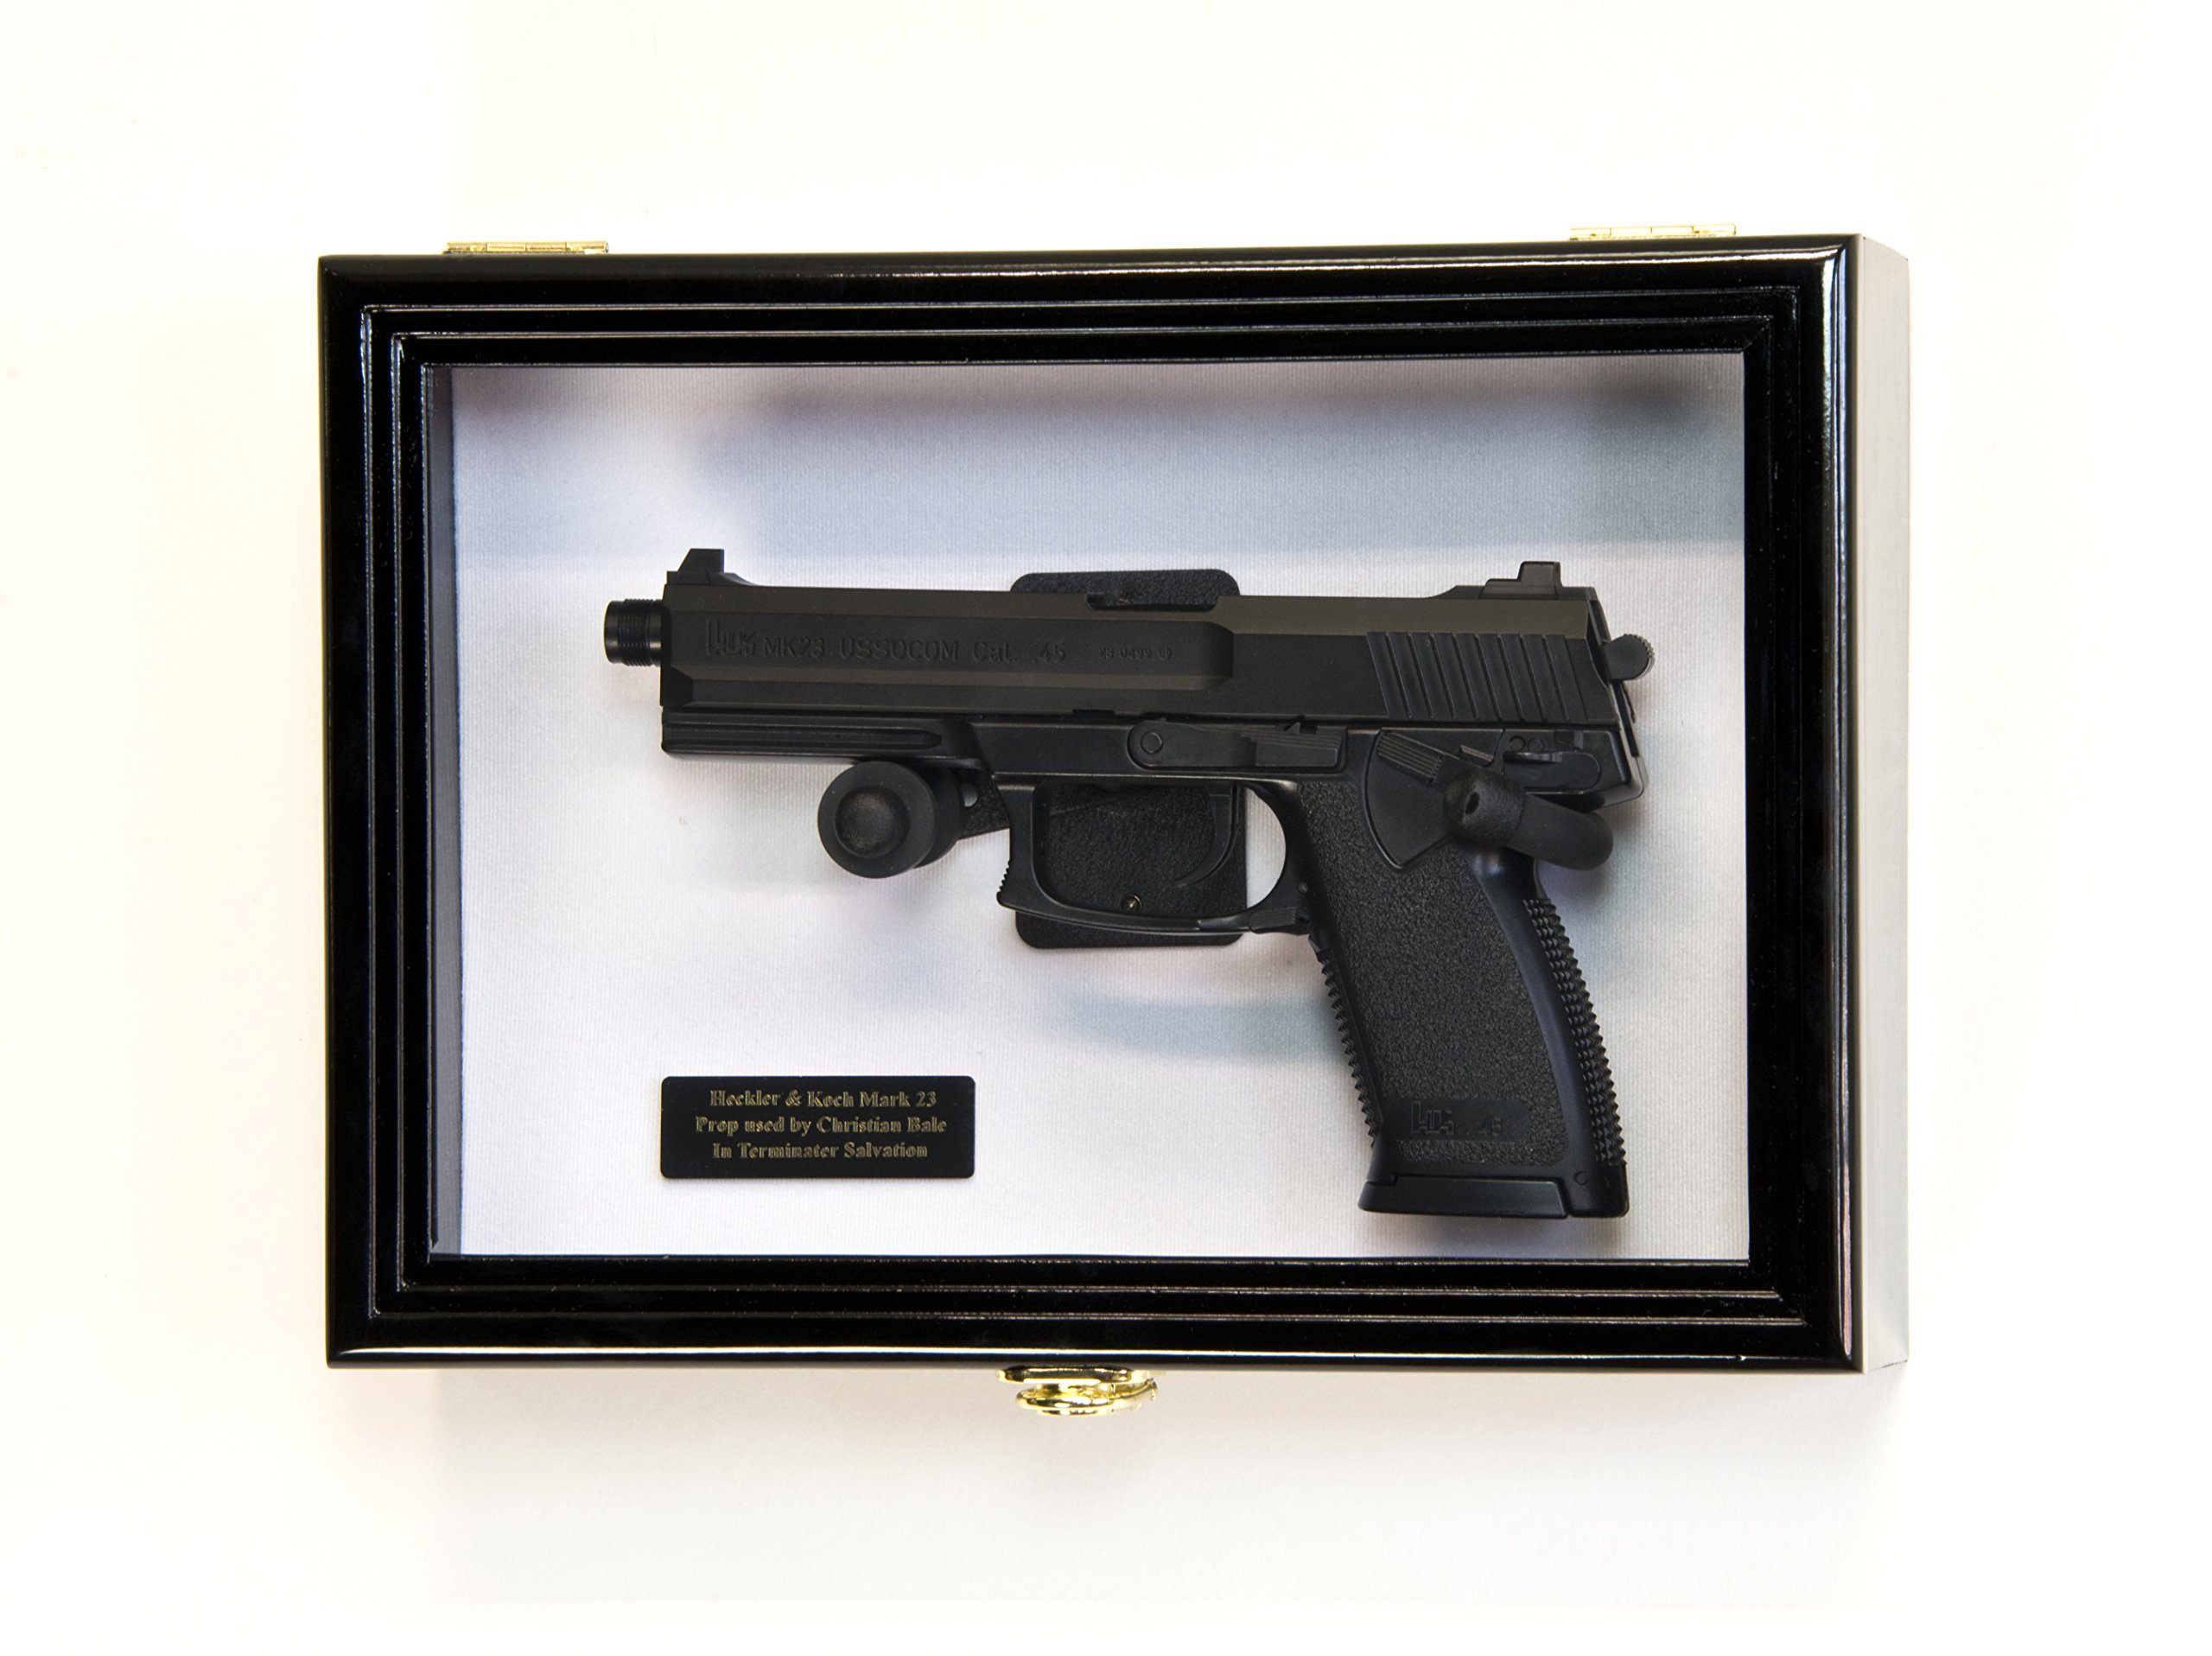 Single Pistol Display Case Wall Mount Solid Hardwood Cabinet (Black Finish, White Felt Background) by sfDisplay.com, Factory Direct Display Cases